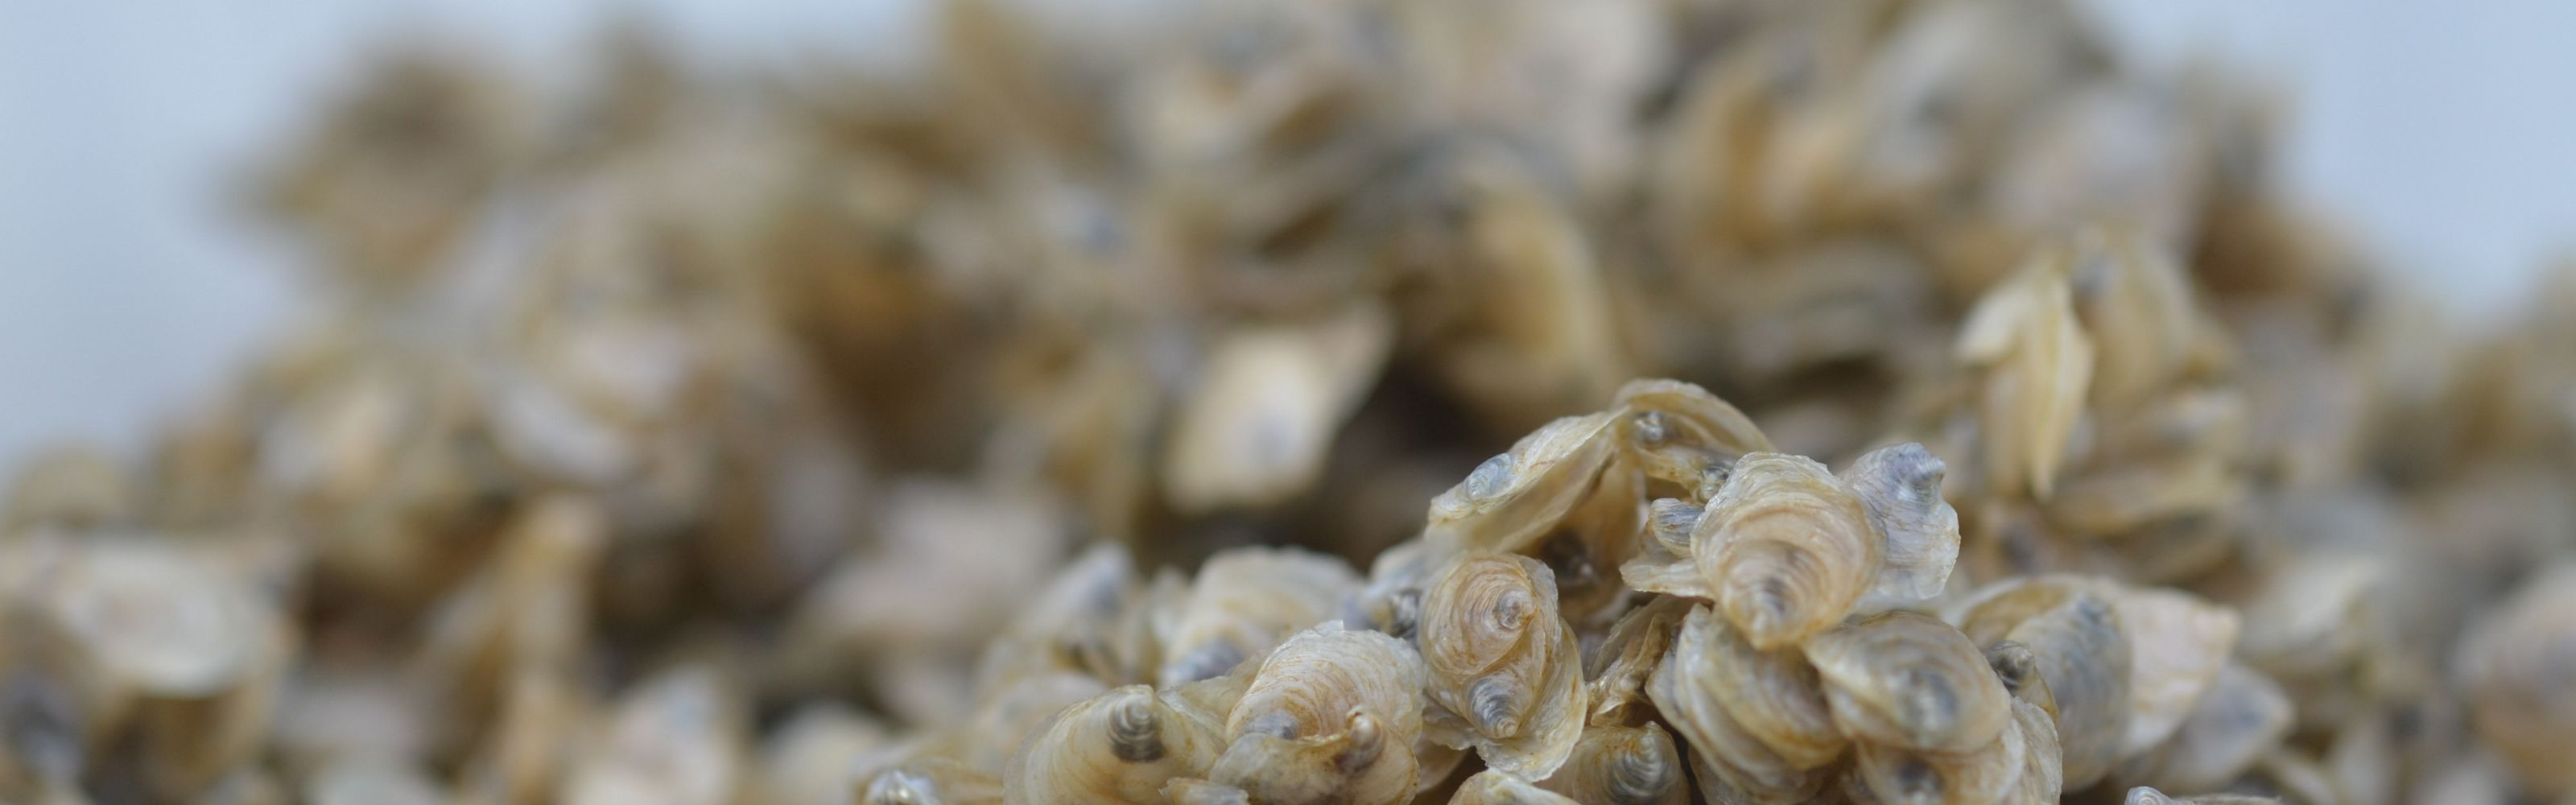 In Australia, we are restoring lost shellfish reefs.